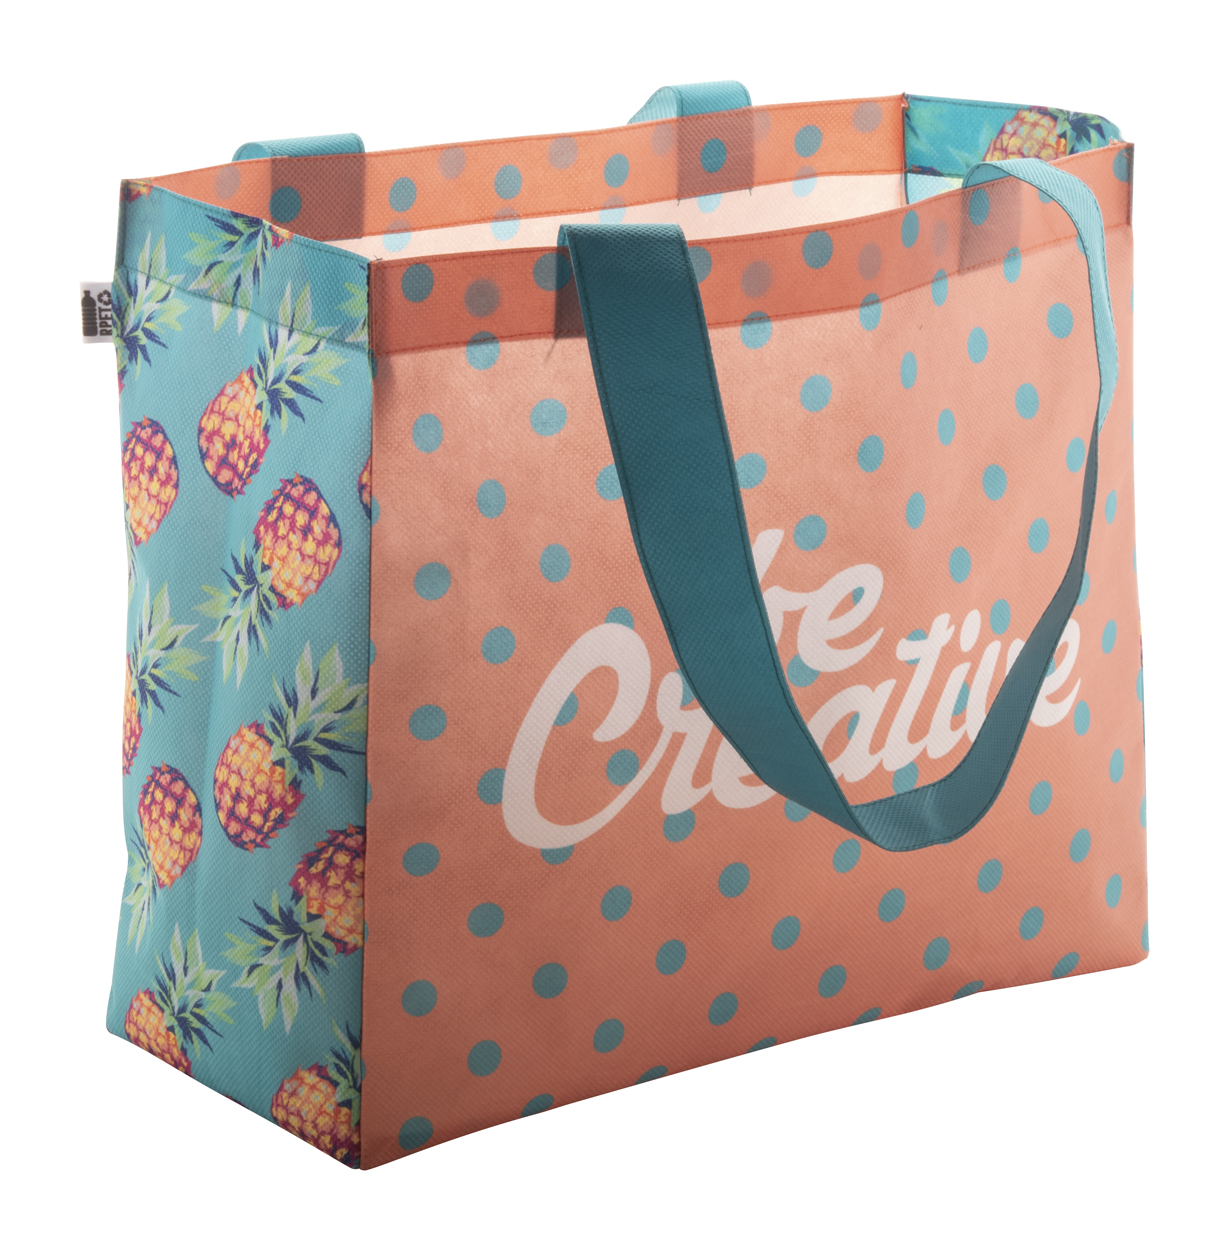 SuboShop B RPET custom shopping bag